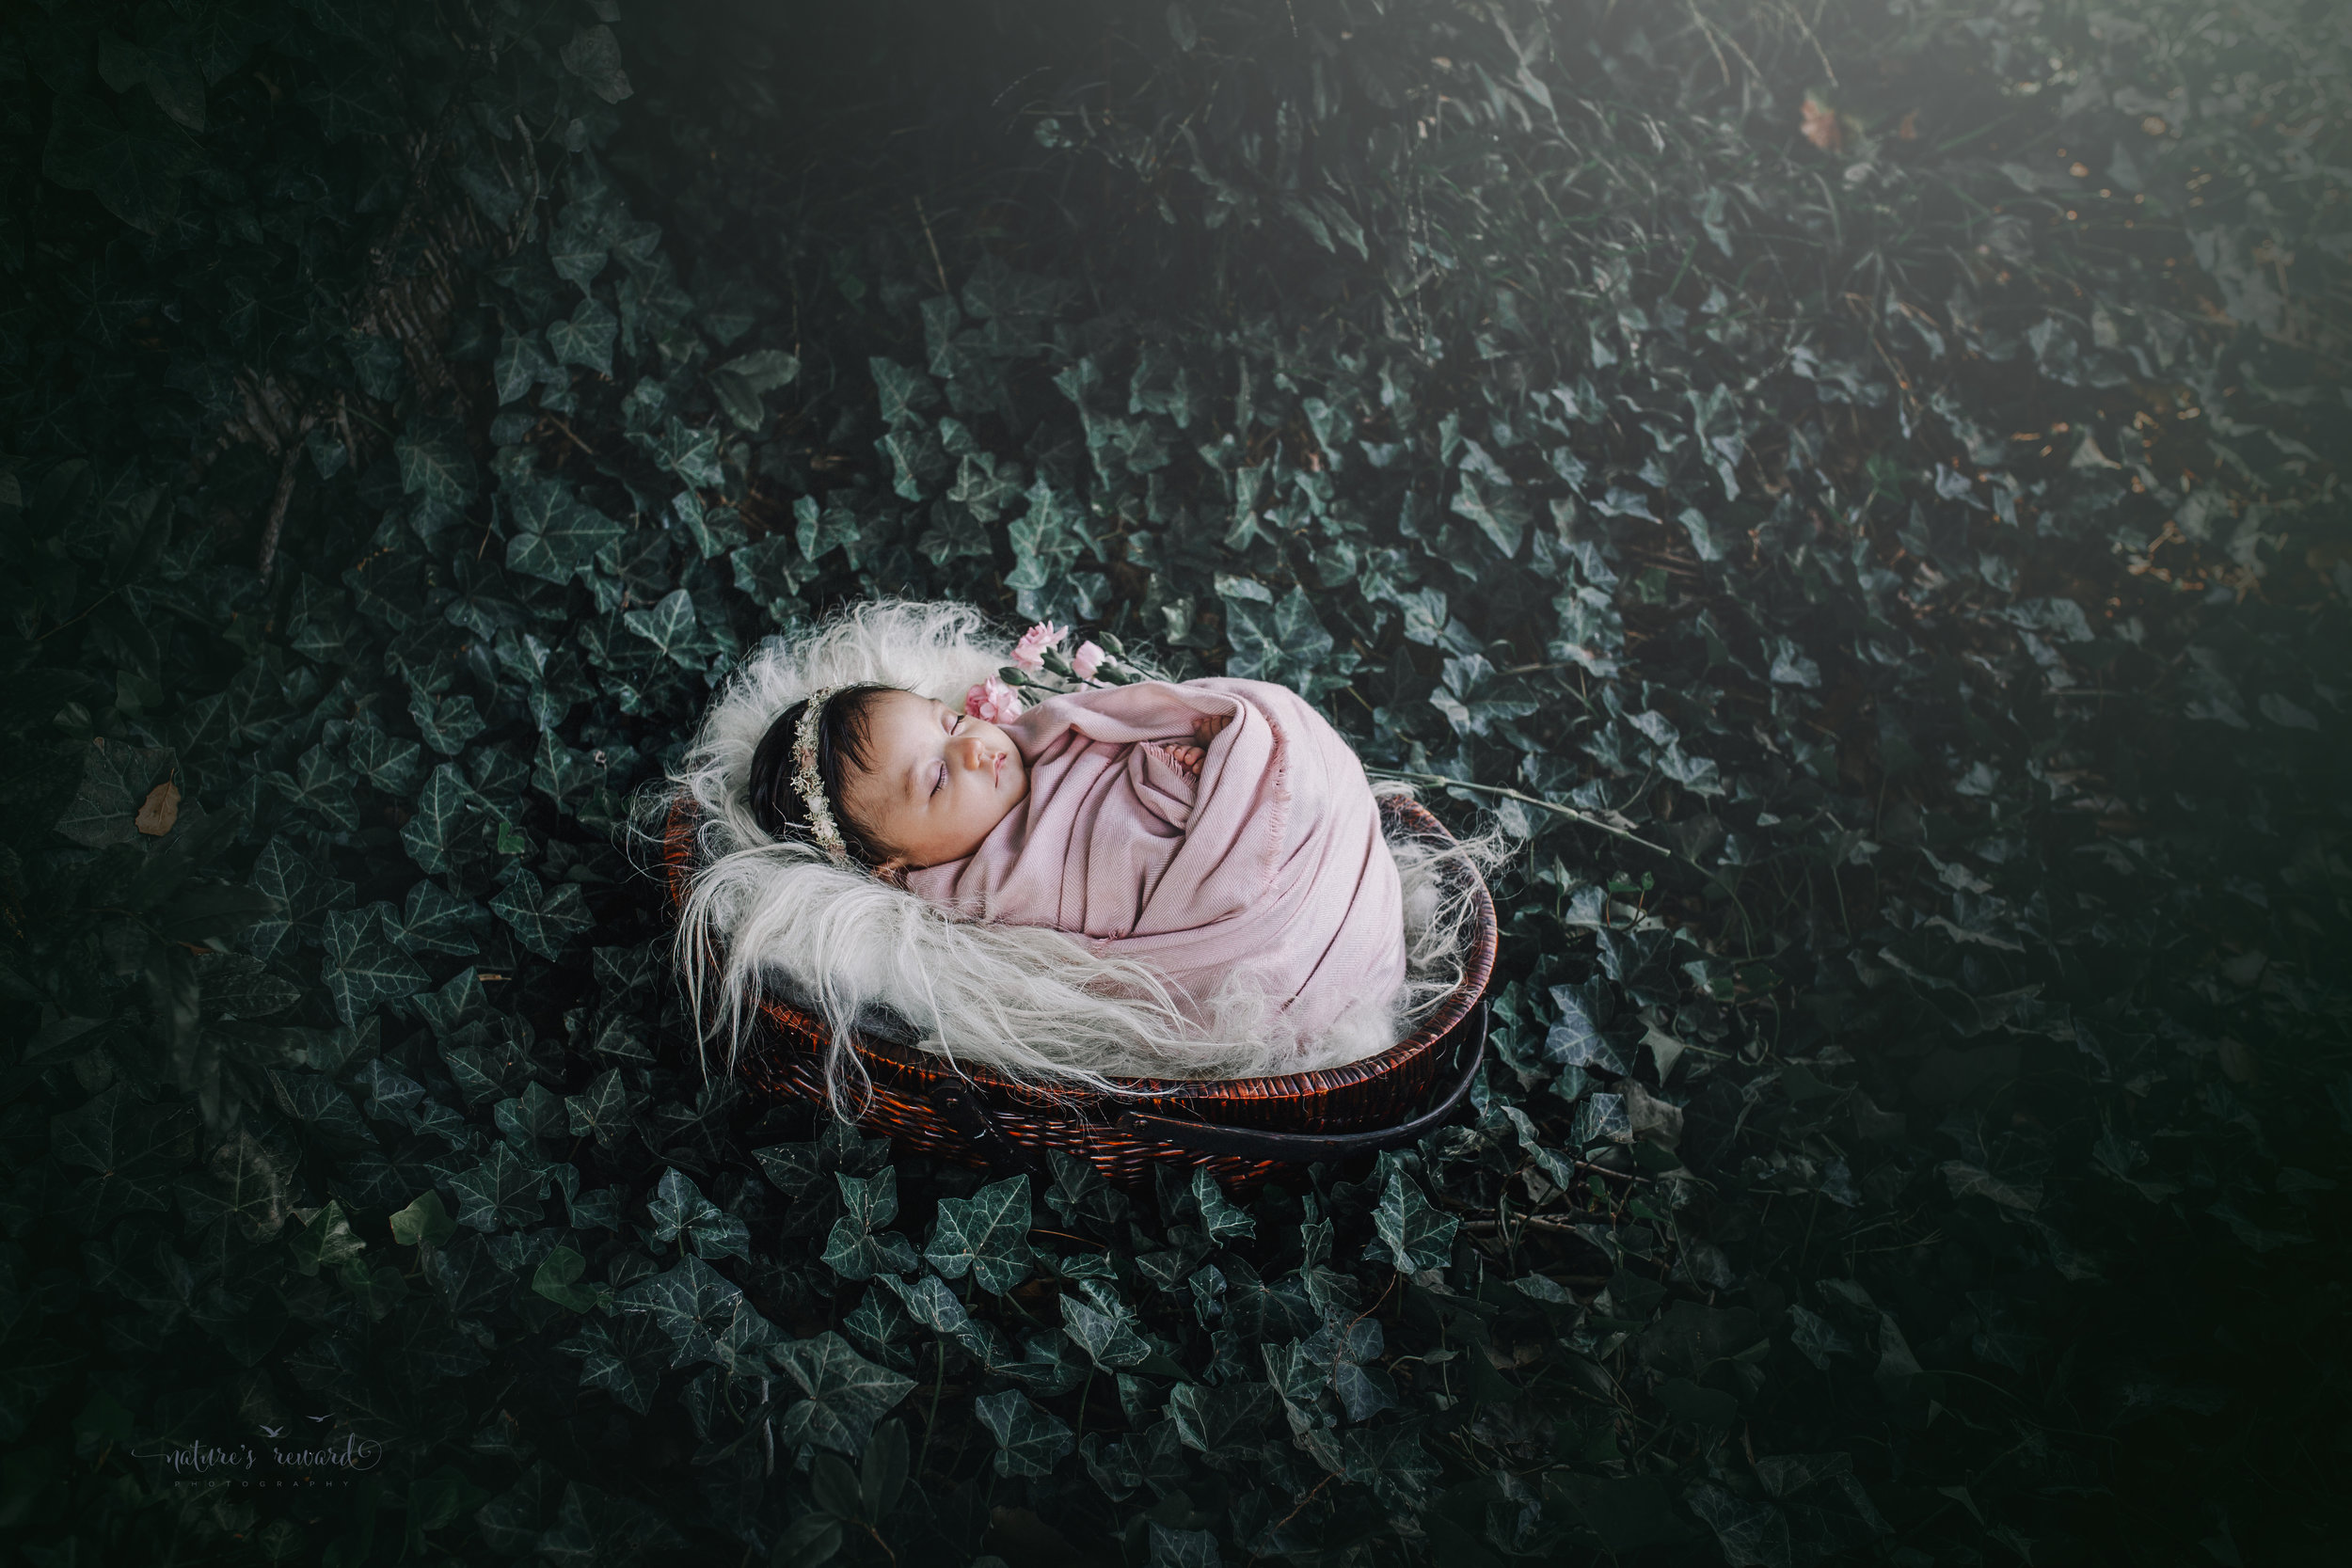 Lovely 10 week old newborn baby girl swaddled in pink, in a bed of ivy- a portrait by Nature's Reward Photography